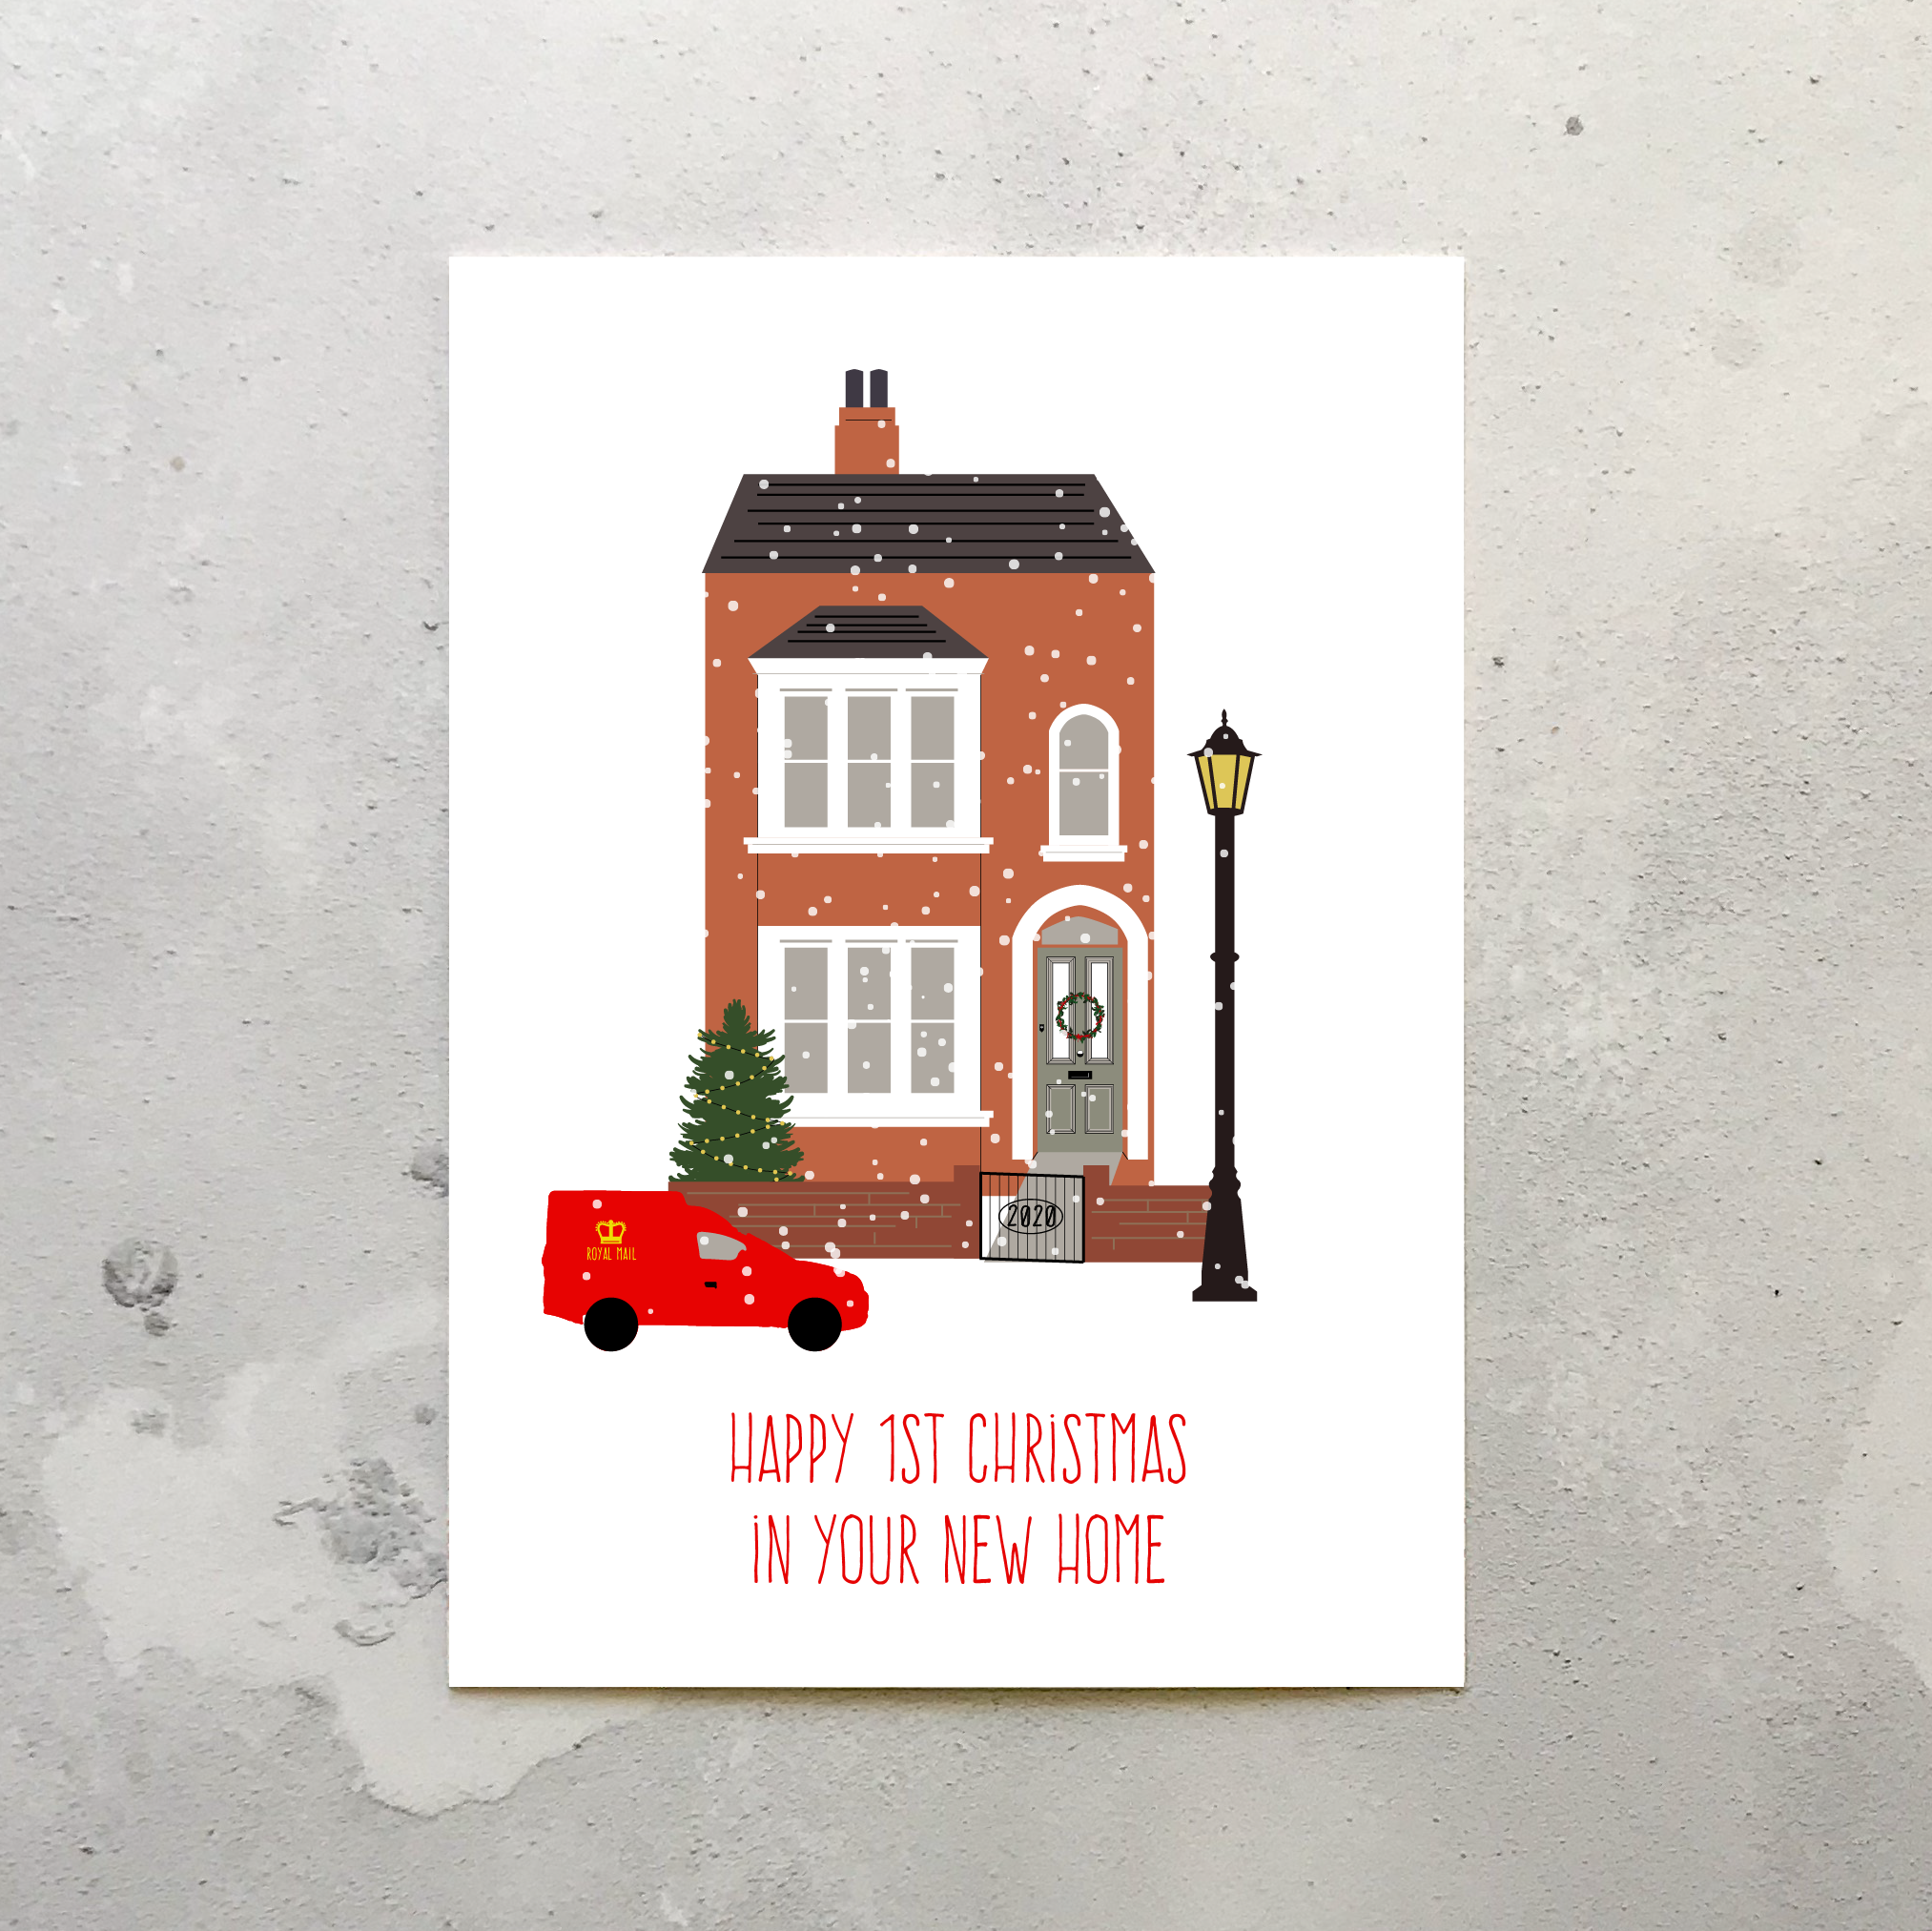 5st Christmas in New Home Charity Christmas Card